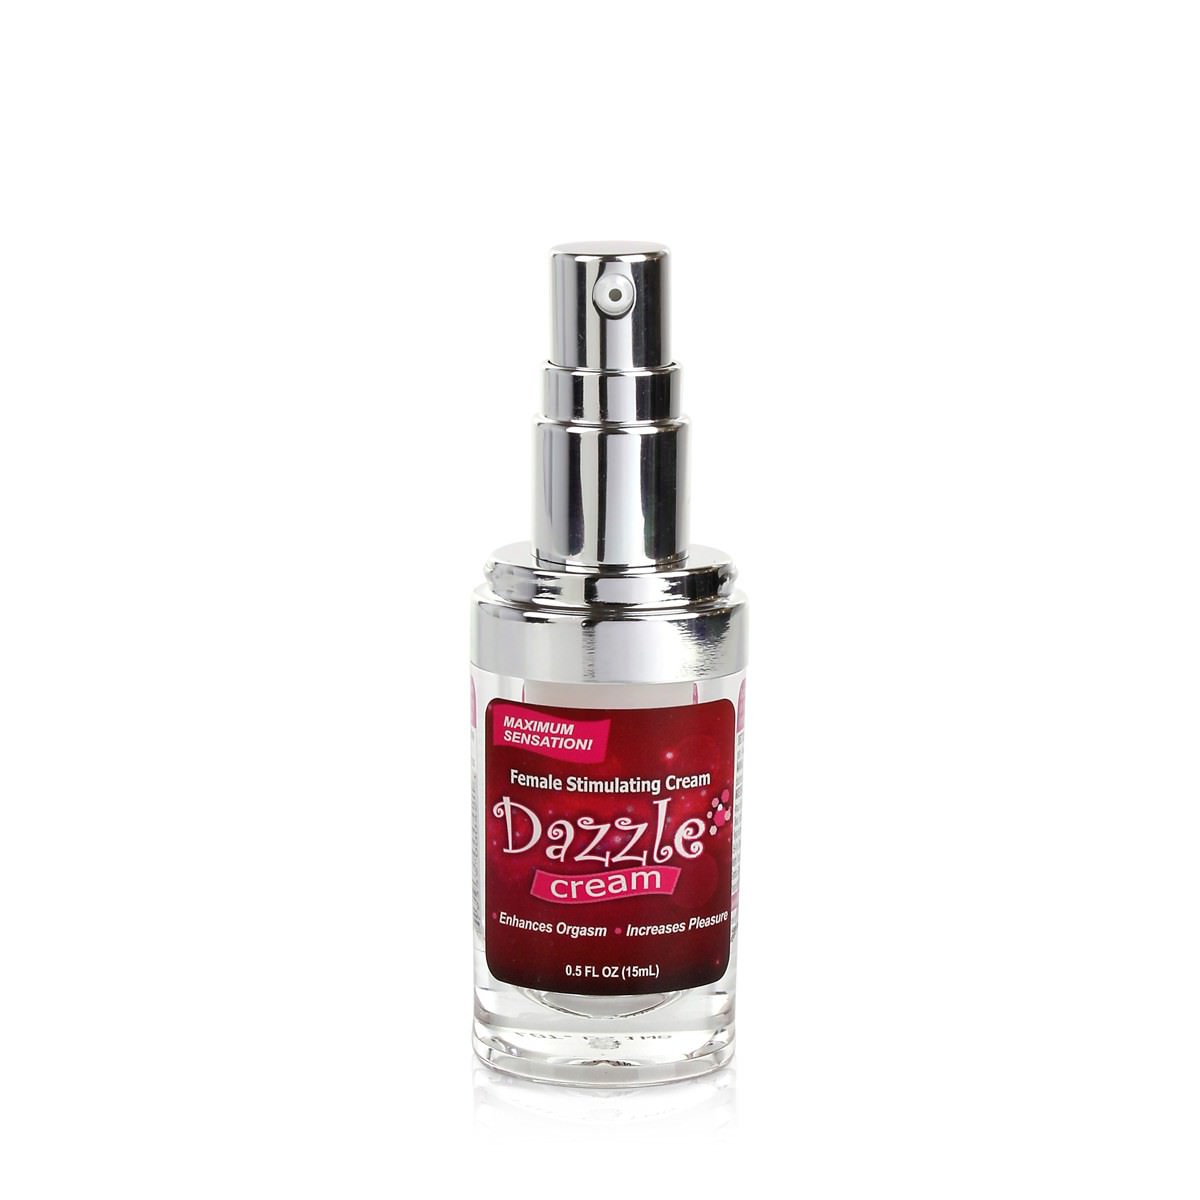 Dazzle Female Stimulating Cream